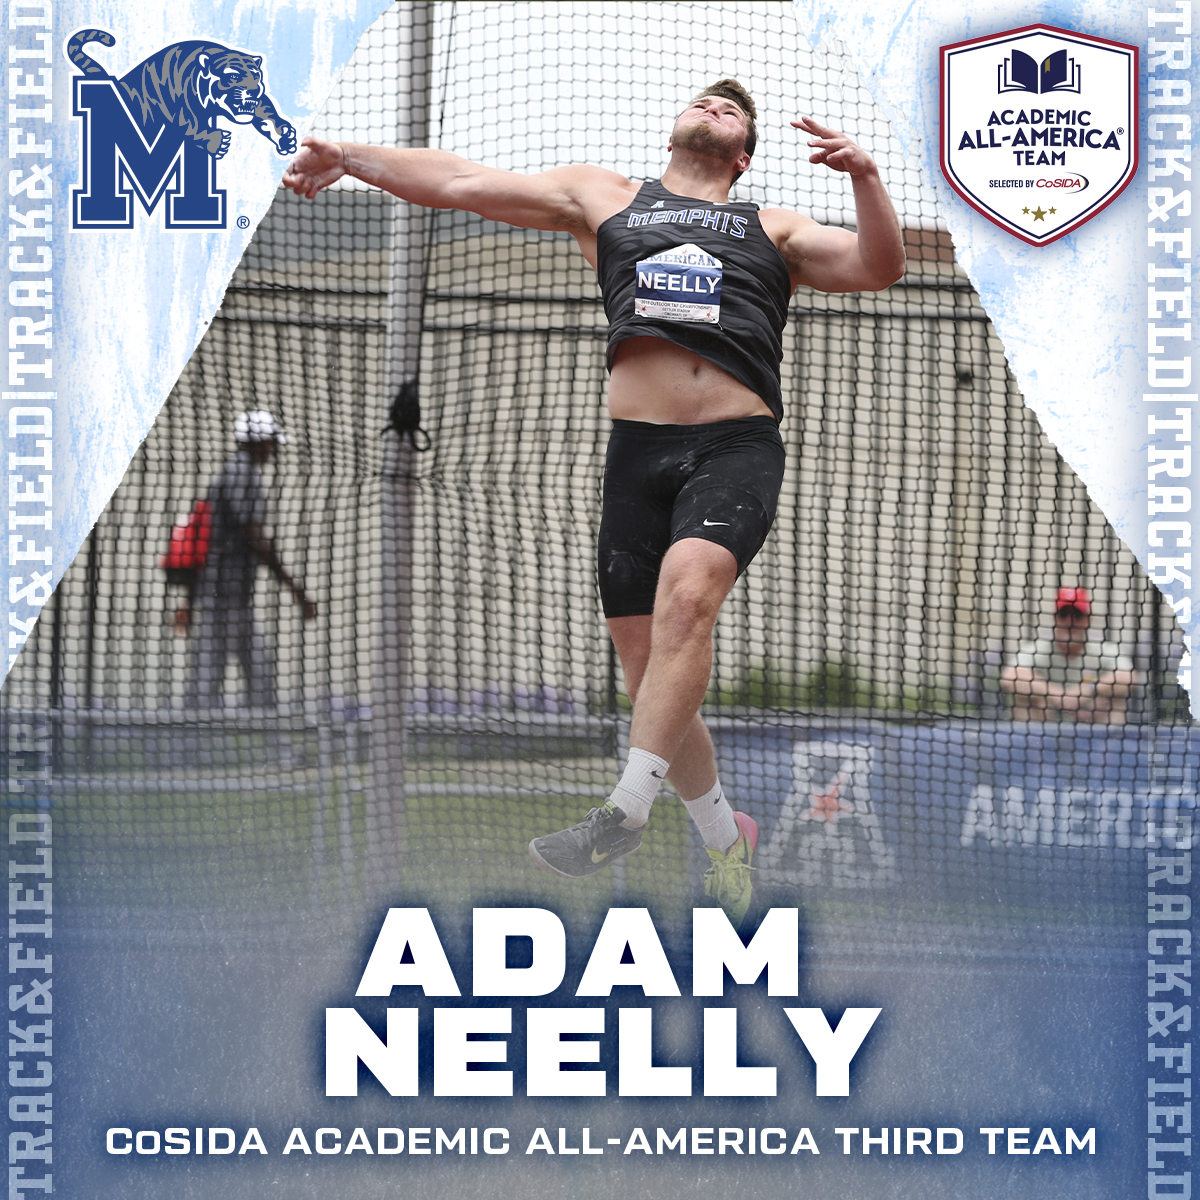 Congrats to @AdamNeelly on his selection to @CoSIDAAcadAA's third team! @MemTigersTF_XC has eight @CoSIDAAcadAA picks the last four years. #GoTigersGo  Release: https://t.co/T86wIRf4uS https://t.co/VZZzC9ZKMk